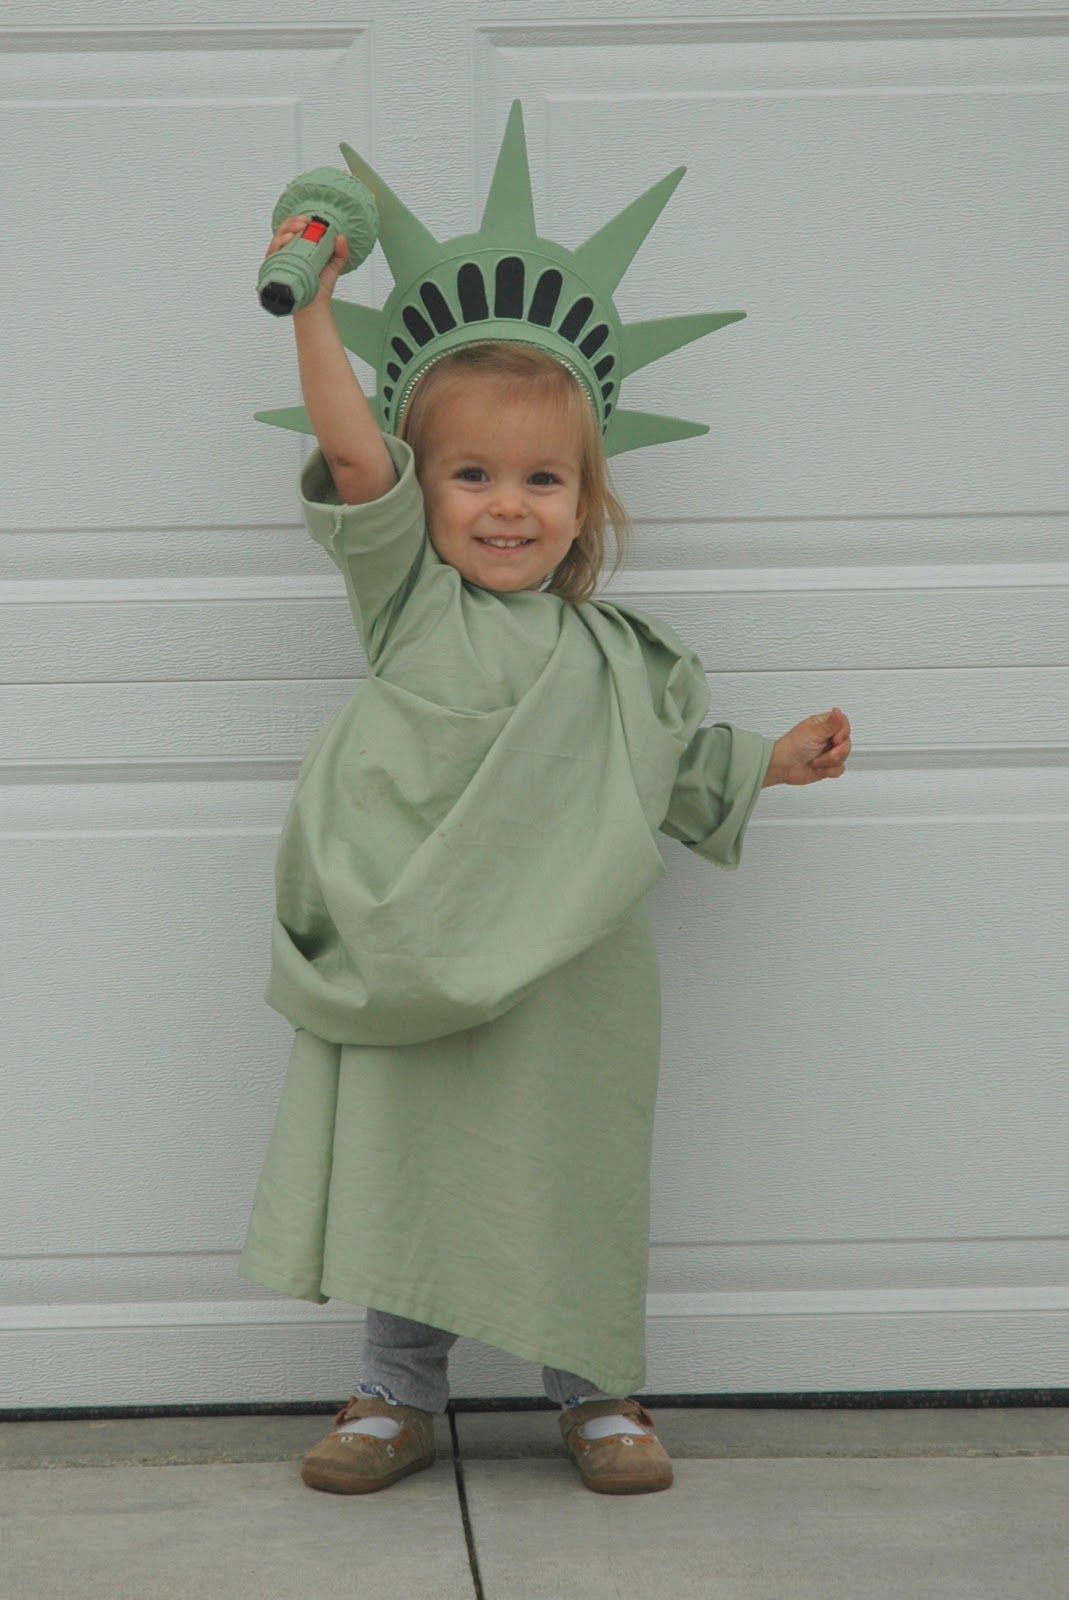 Halloween P P P Poker Face P P Poker Faces Mini Tutorial For Meat Fabric Diy Statue Of Liberty Costume Halloween Costumes For Kids Kids Costumes